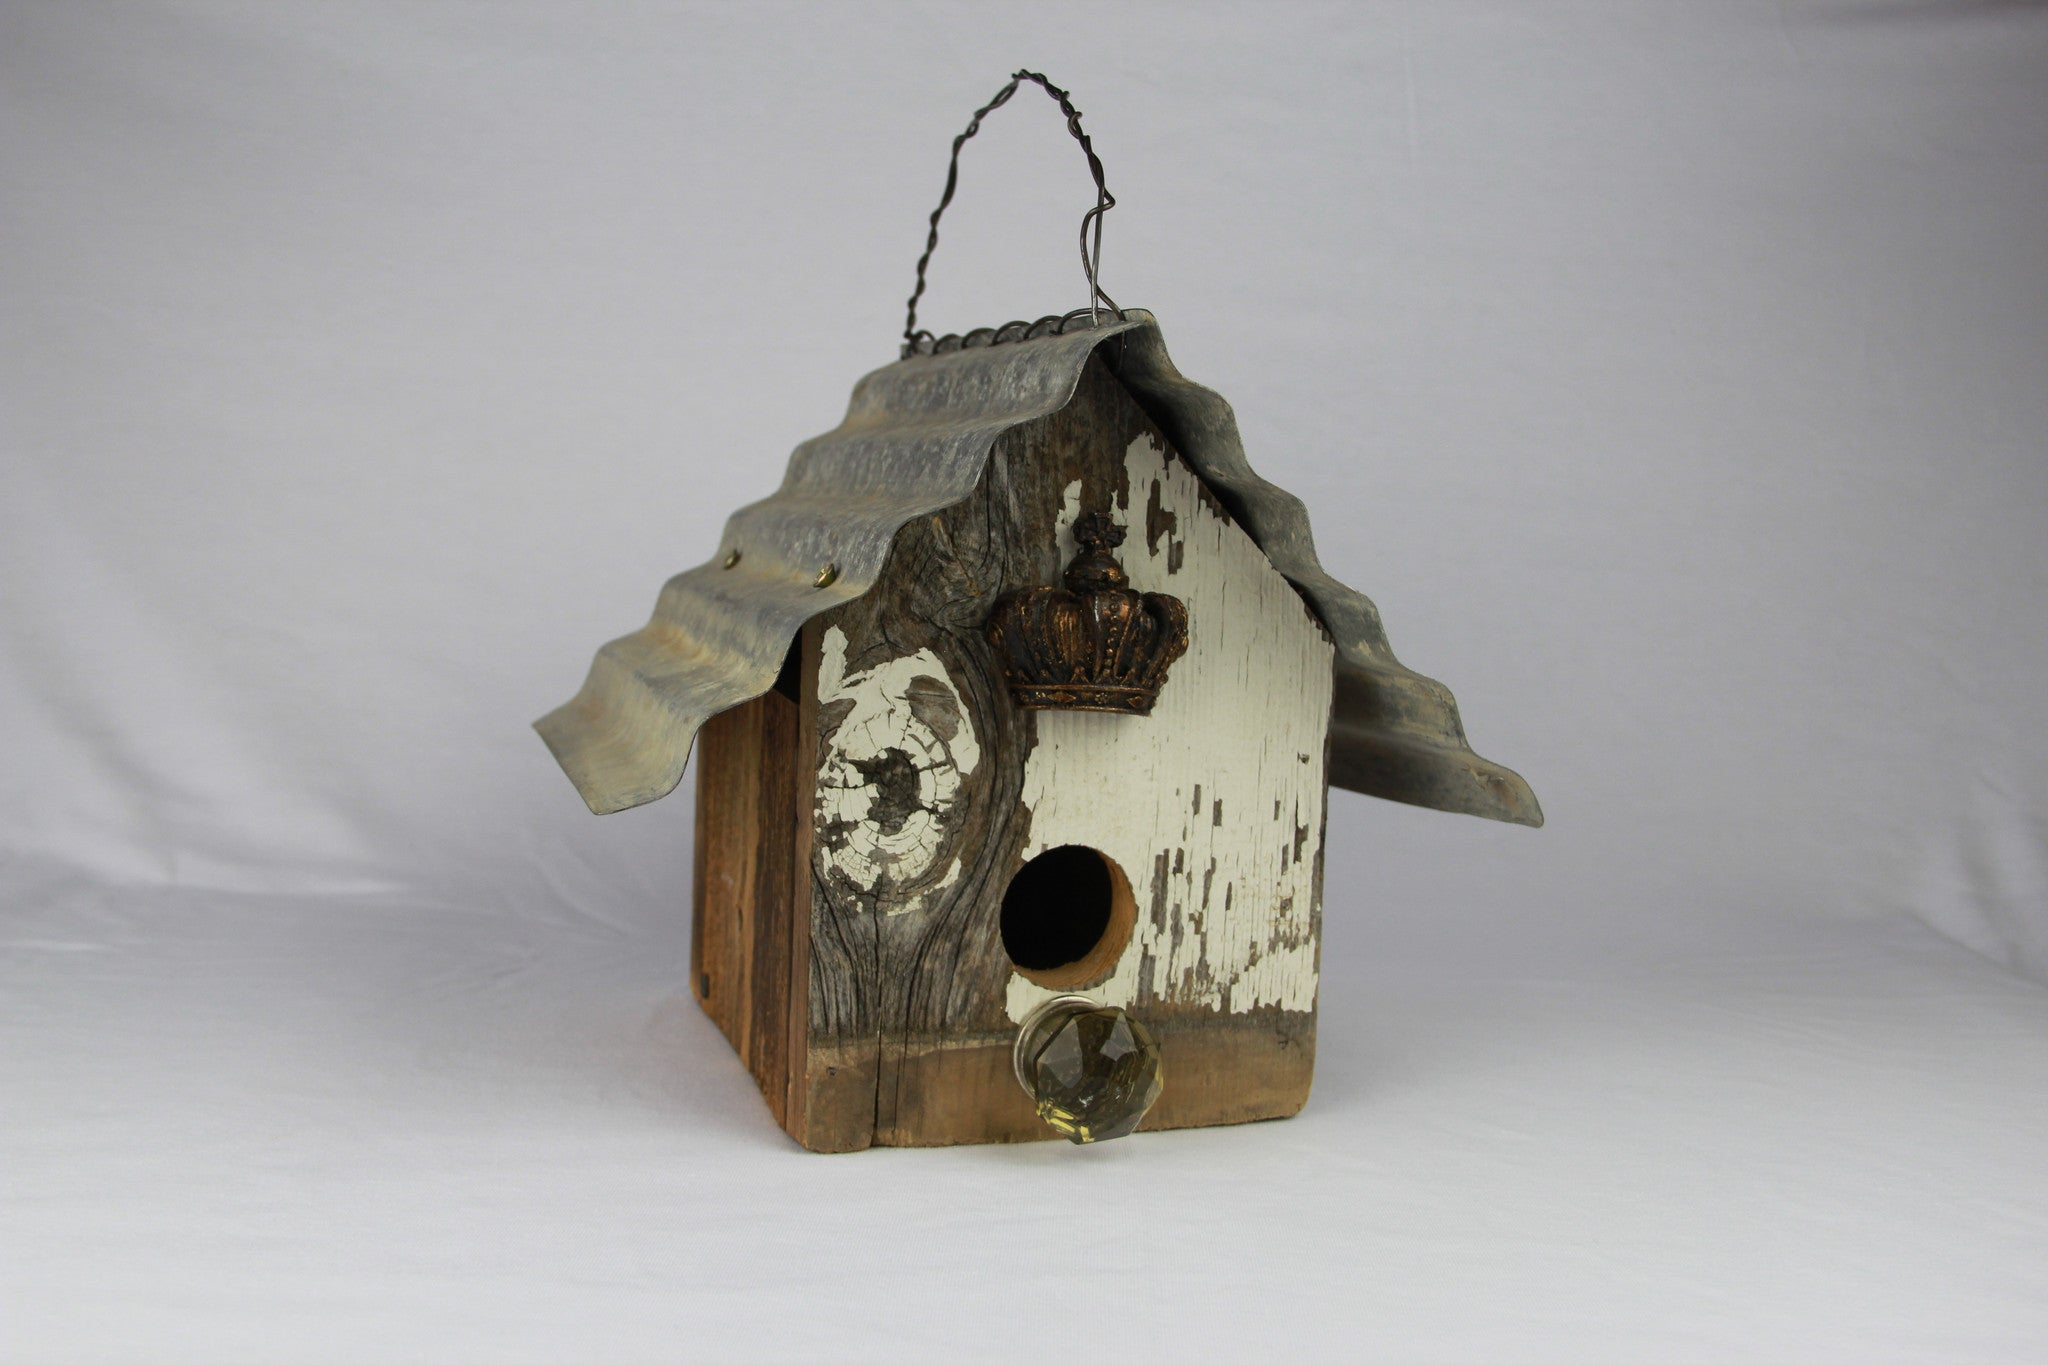 Rustic Bird Houses - Unlimited 83